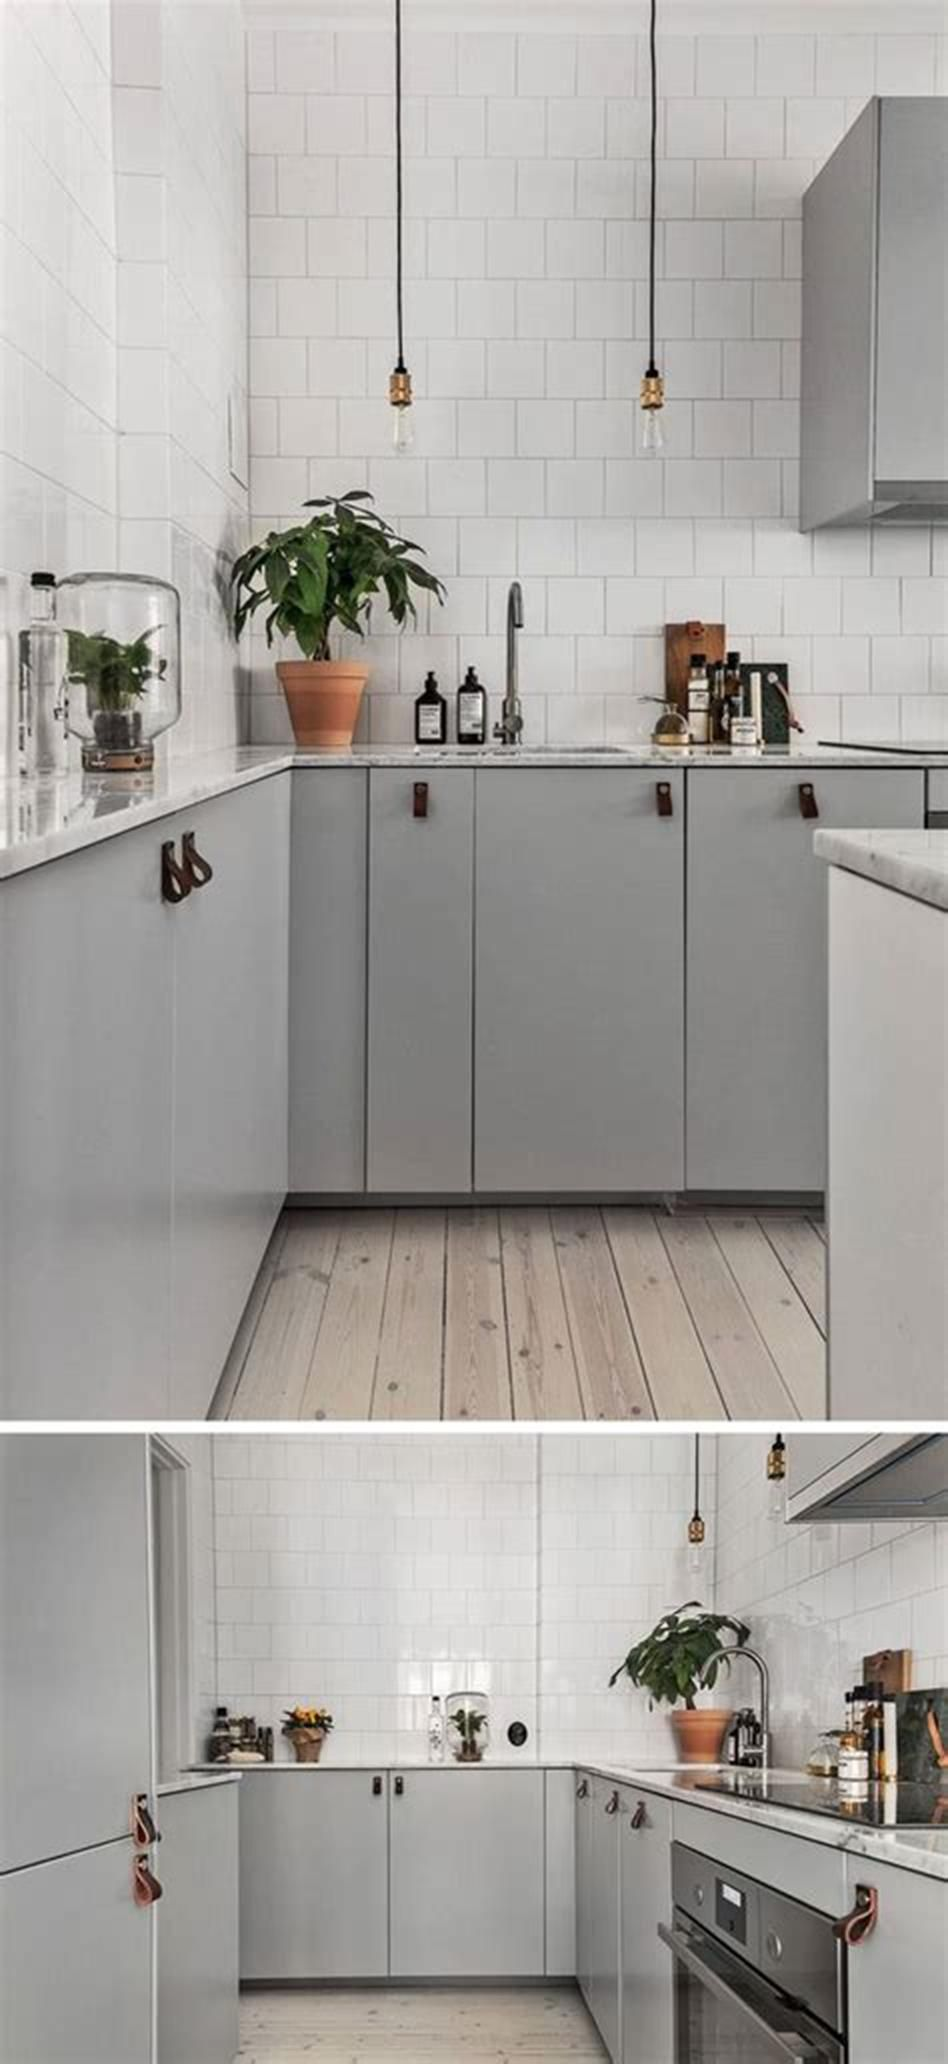 31 Amazing Modern Kitchen Ideas for 2020 You'll Love